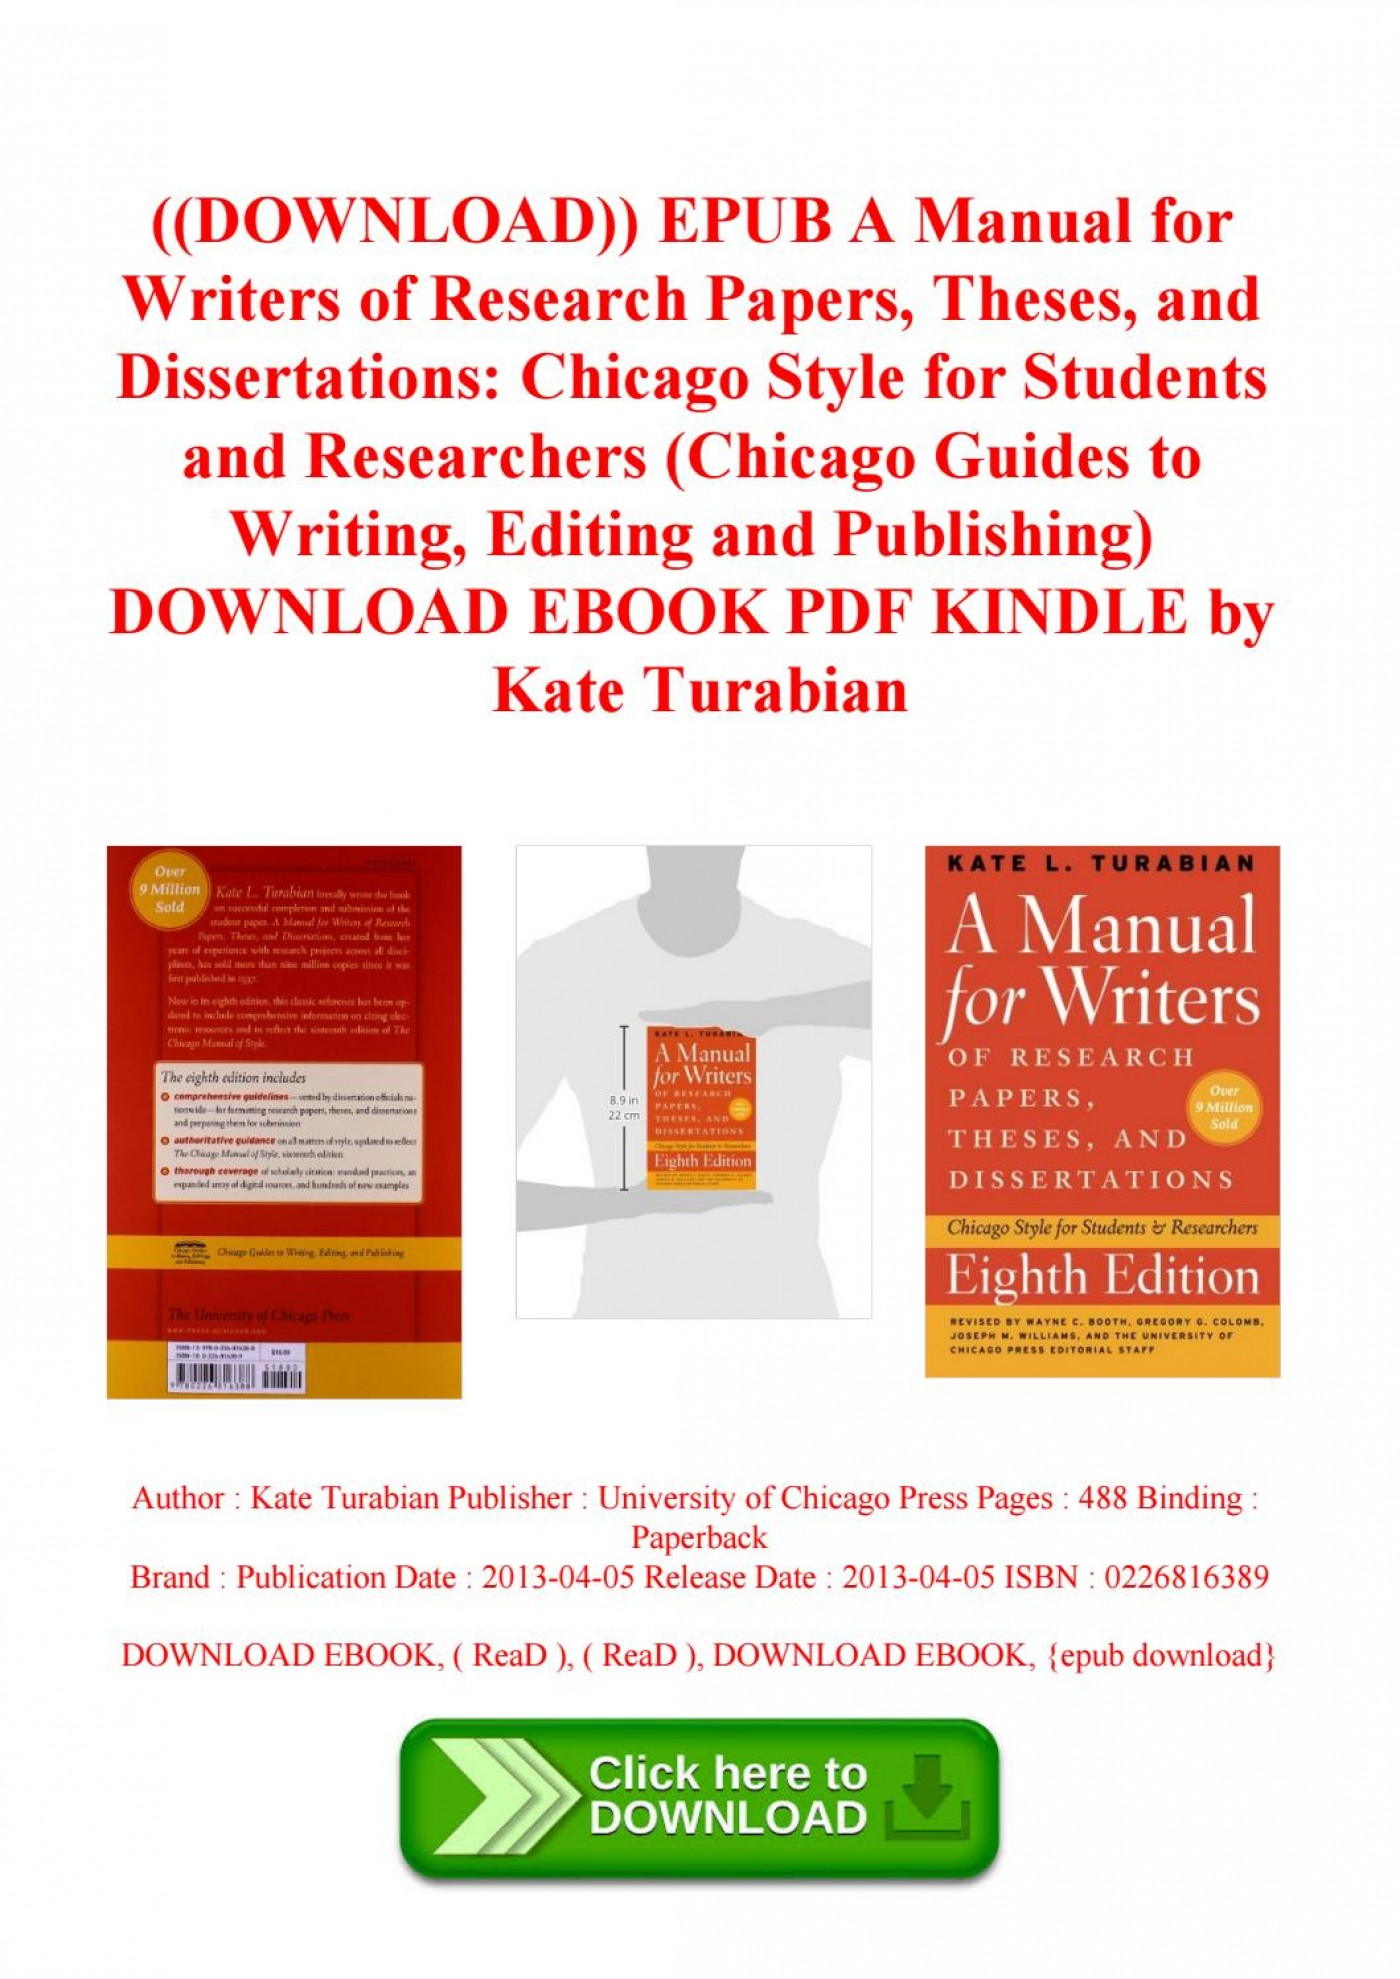 003 Page 1 Manual For Writers Of Researchs Theses And Dissertations Magnificent Research Papers A Amazon 9th Edition Pdf 8th 13 1400